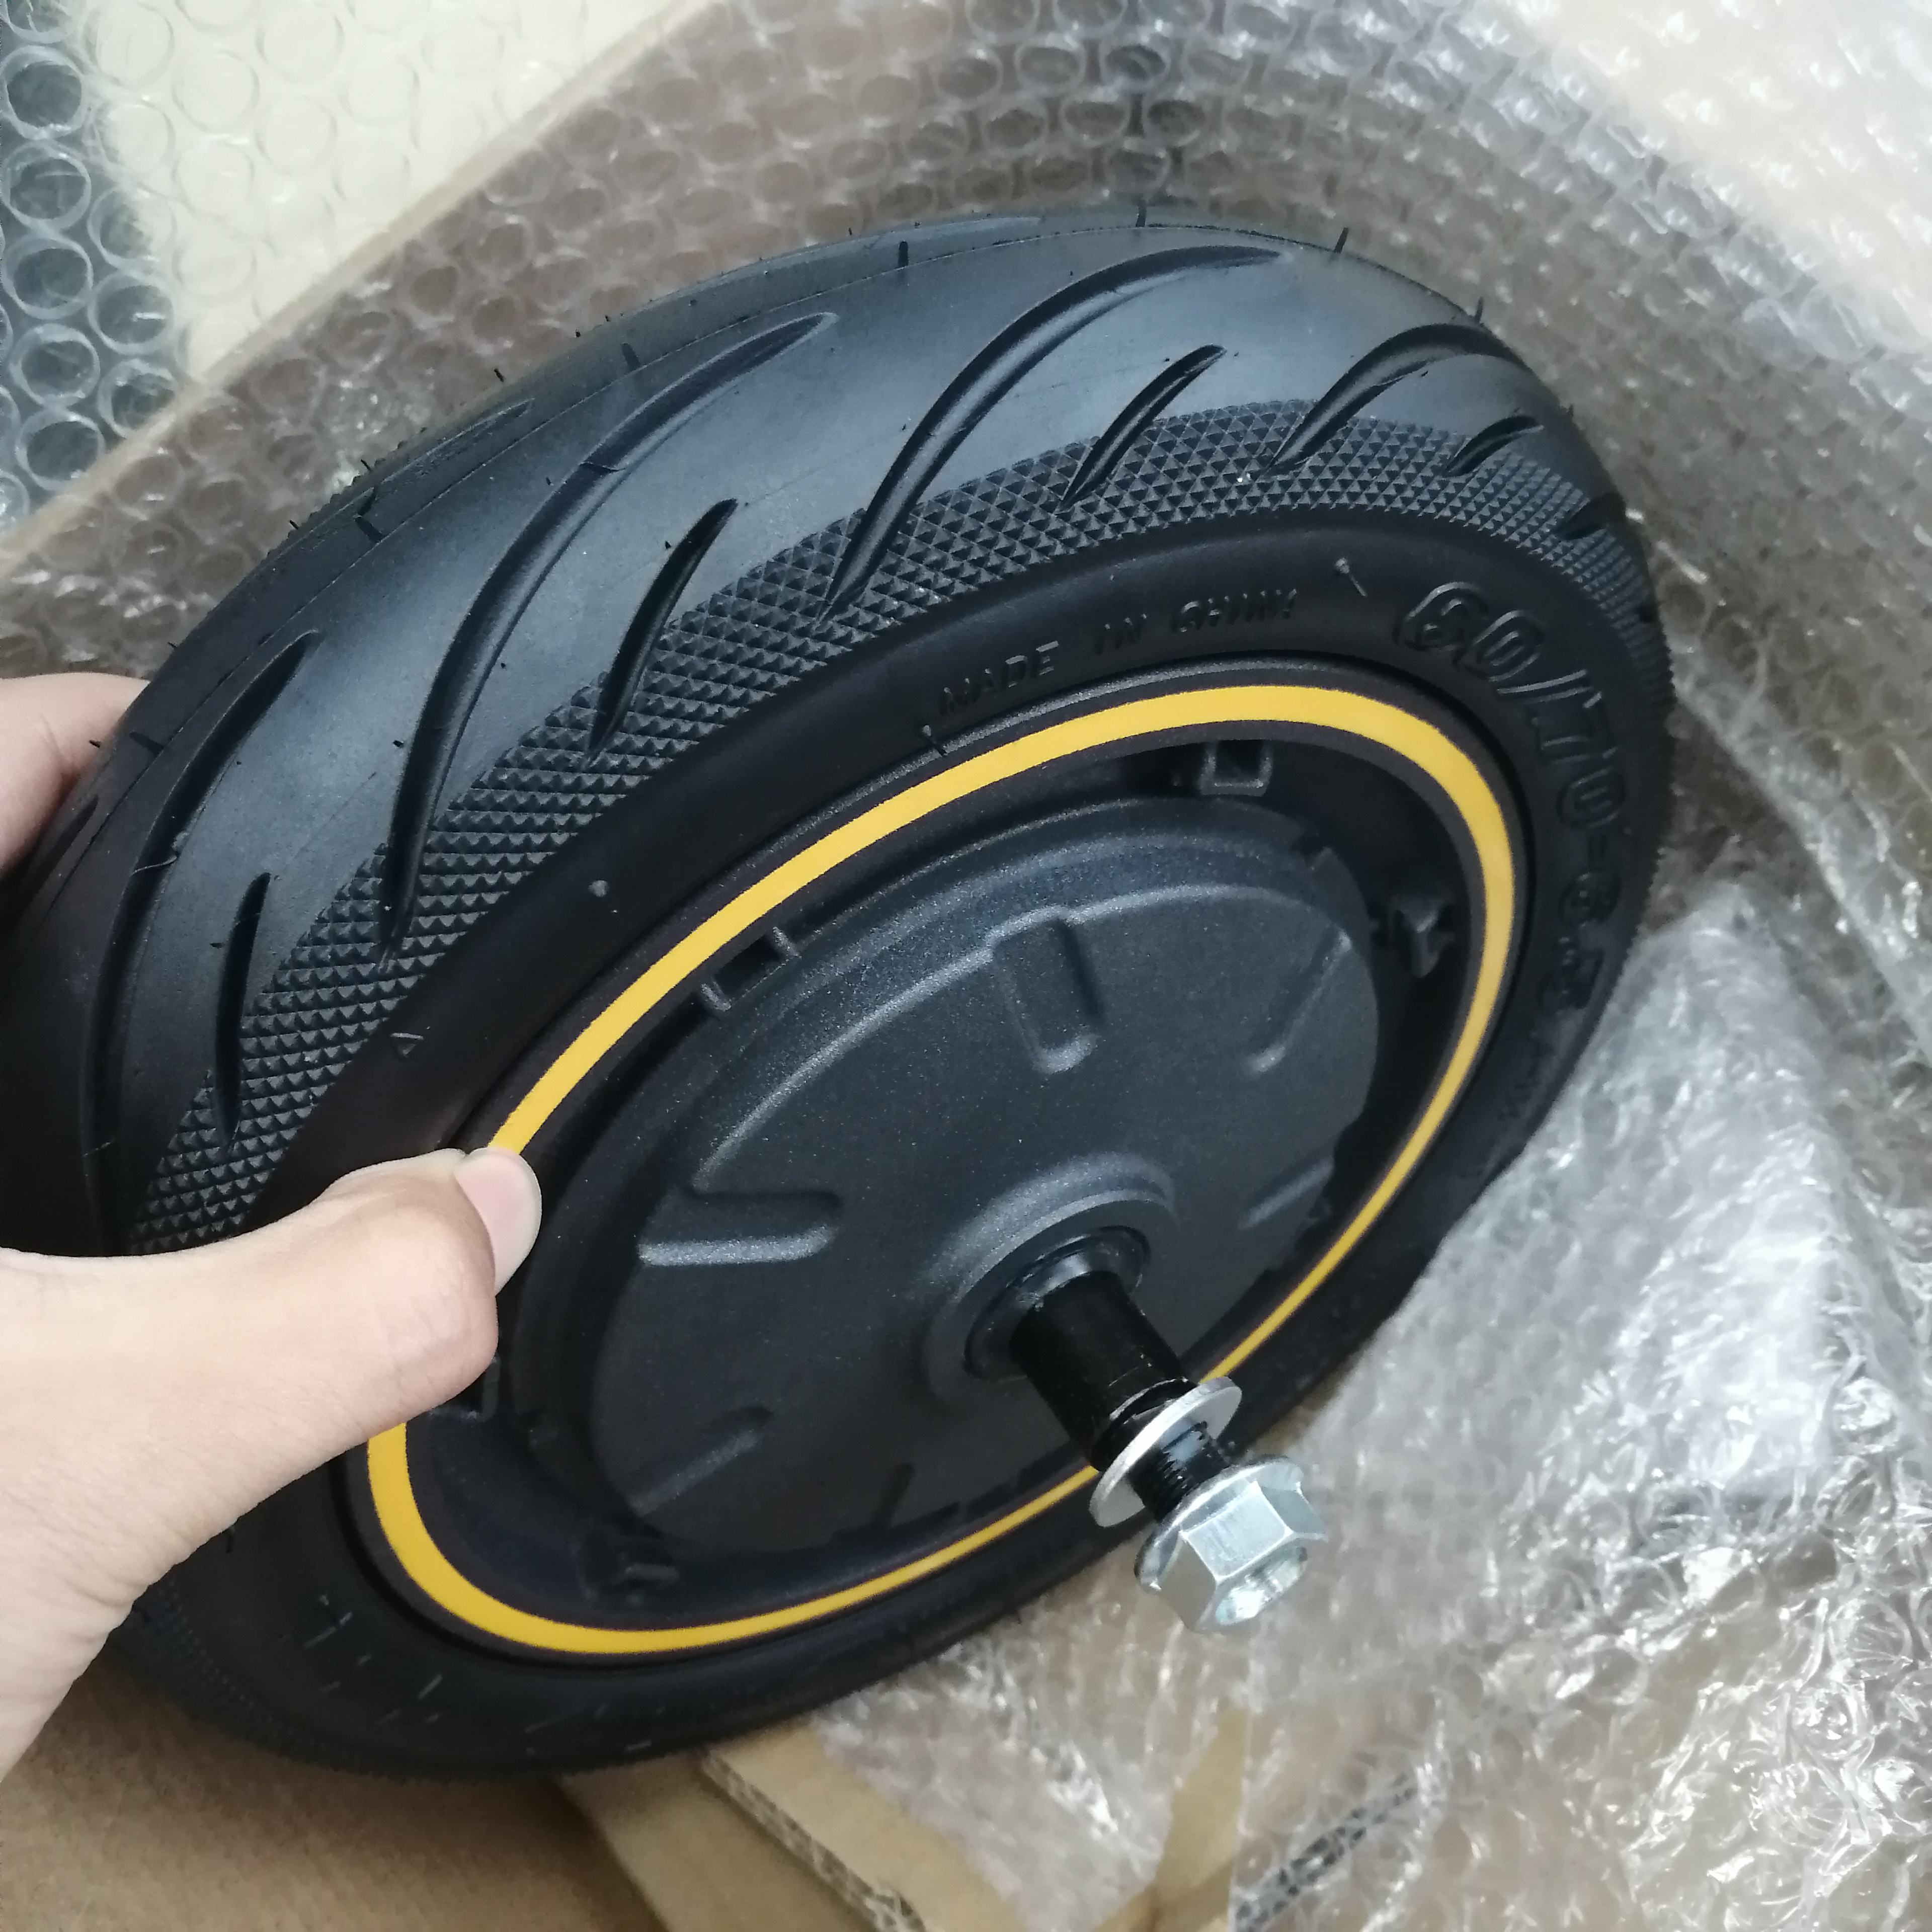 Serial Number 9 Powerful 350W Rear Wheel with Tubeless Tire Motor 10inch Wheel Hub Motor for Original G30P Max Electric Scooter